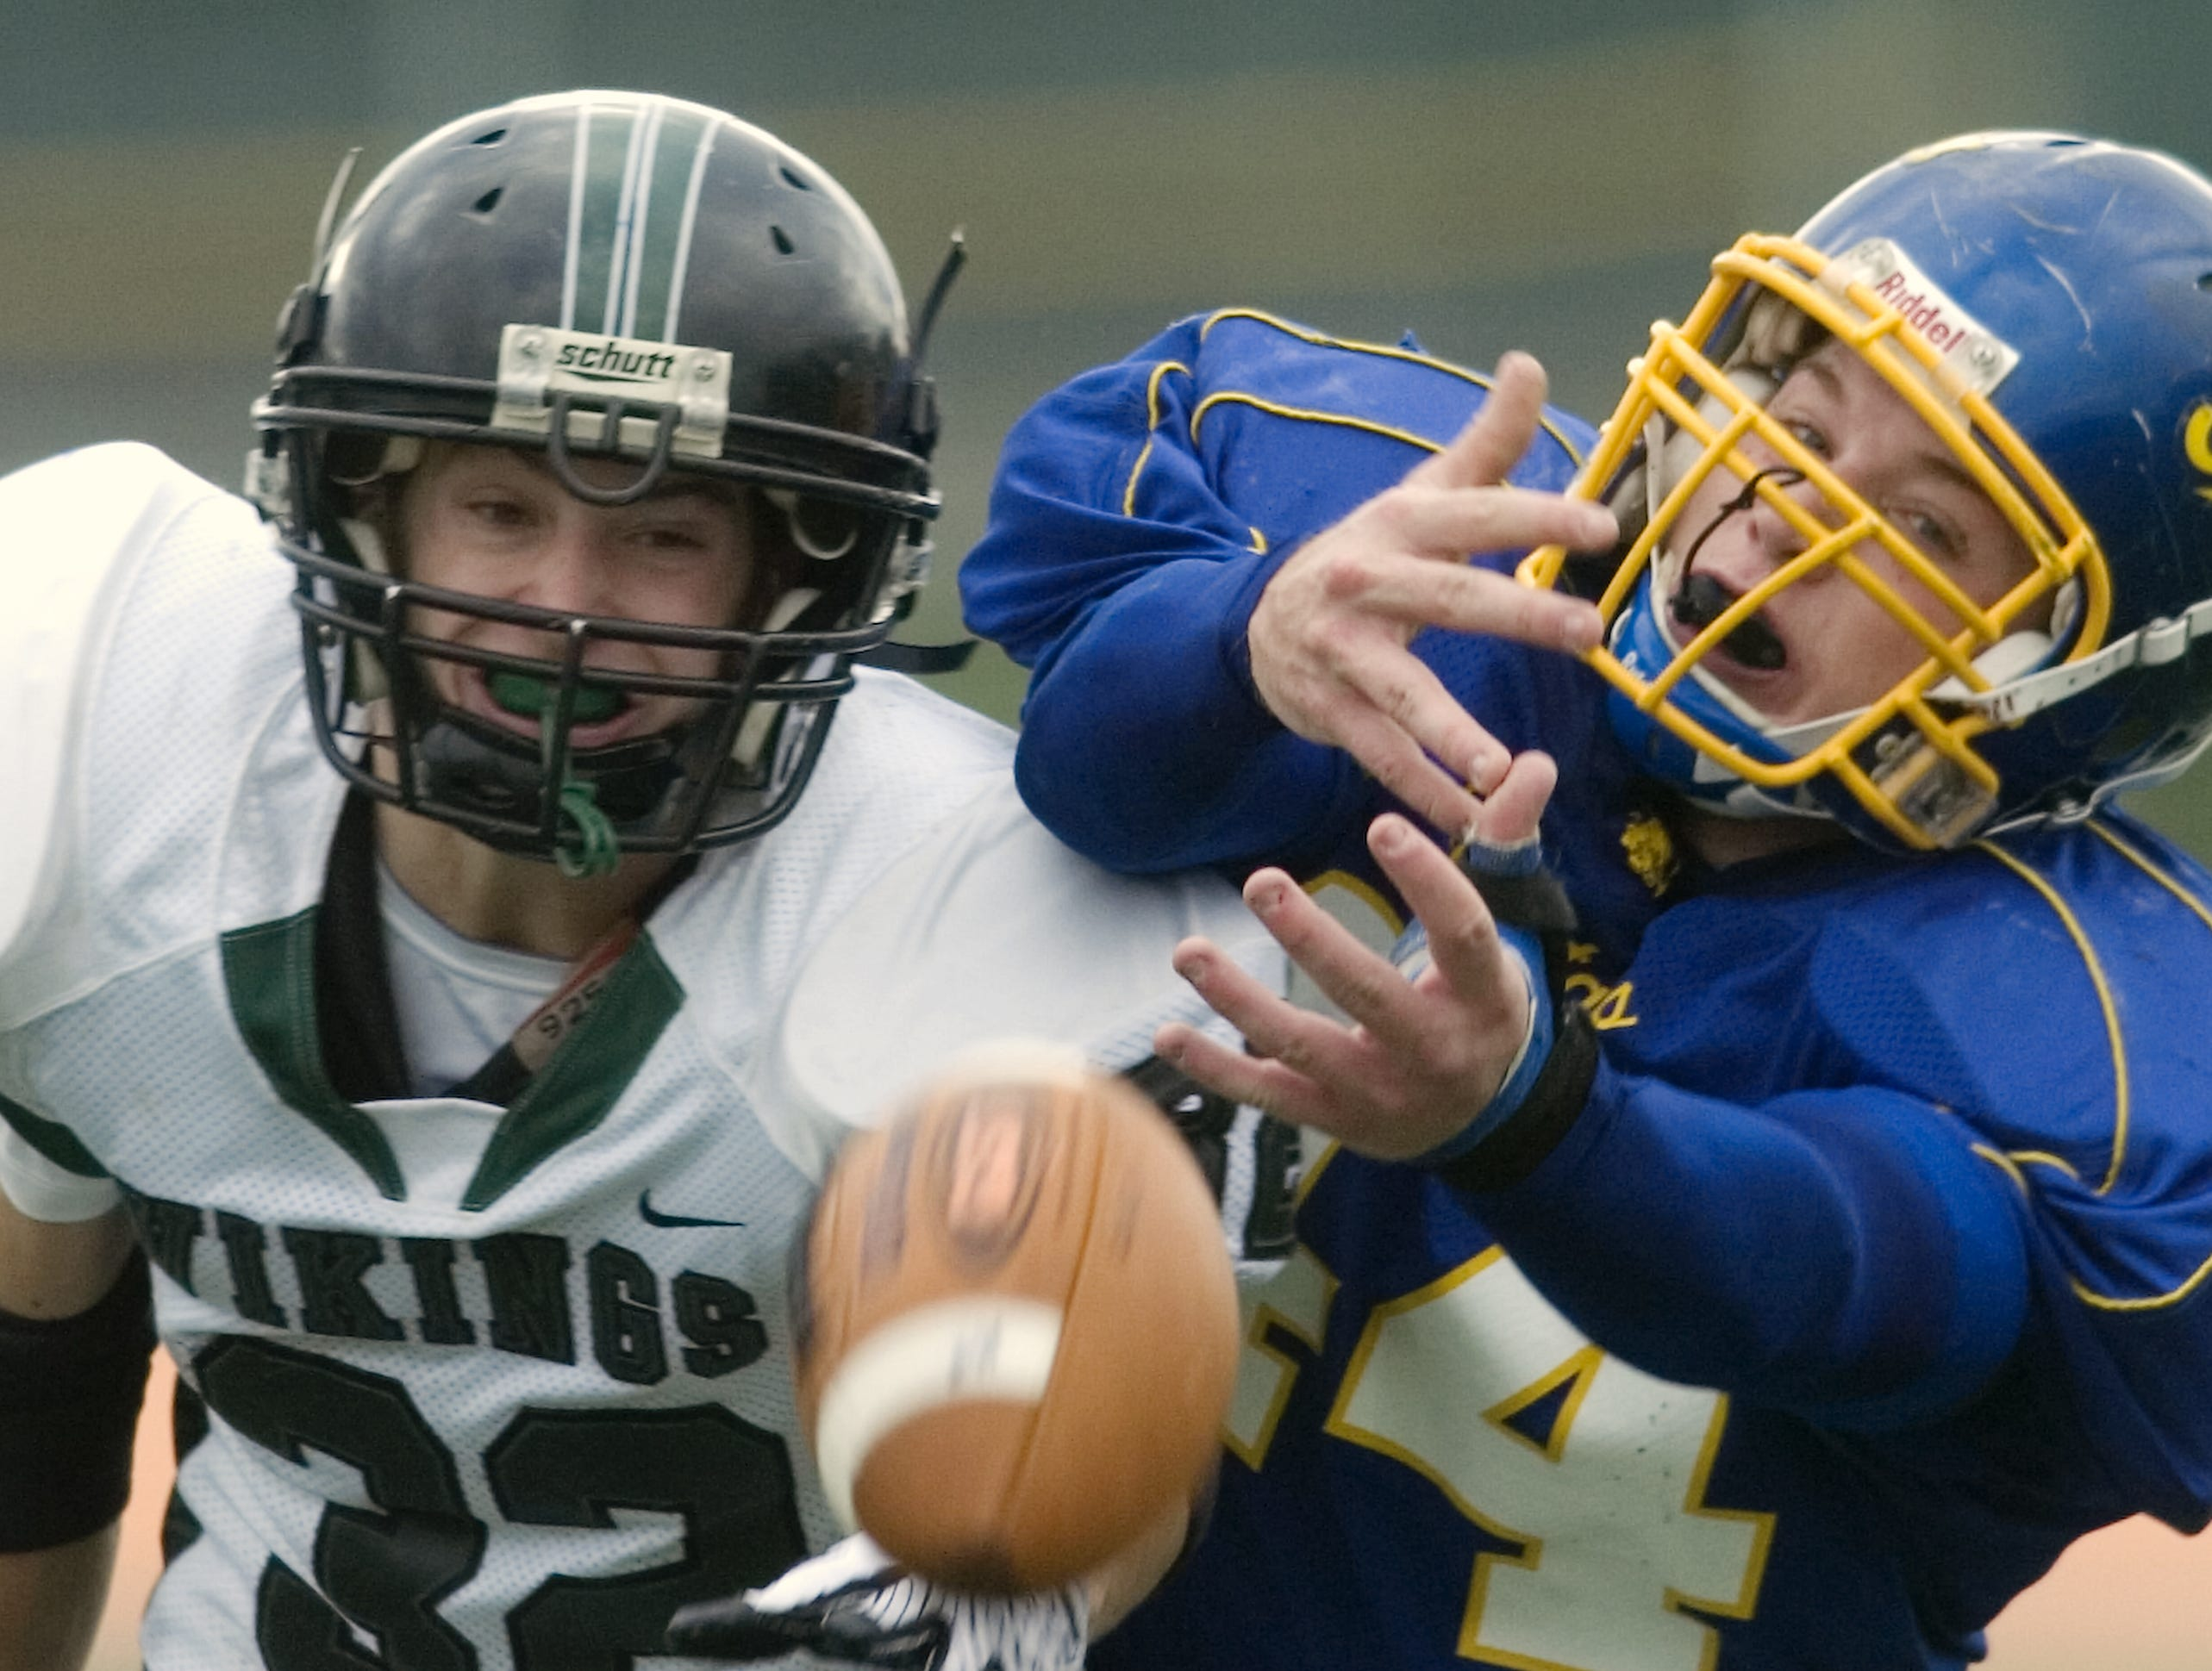 Maine-Endwell's Nate Reynolds, right,could not complete the reception as Corning West's Gregory Riff defends in the second quarter of a 2008 game at Ty Cobb Stadium.